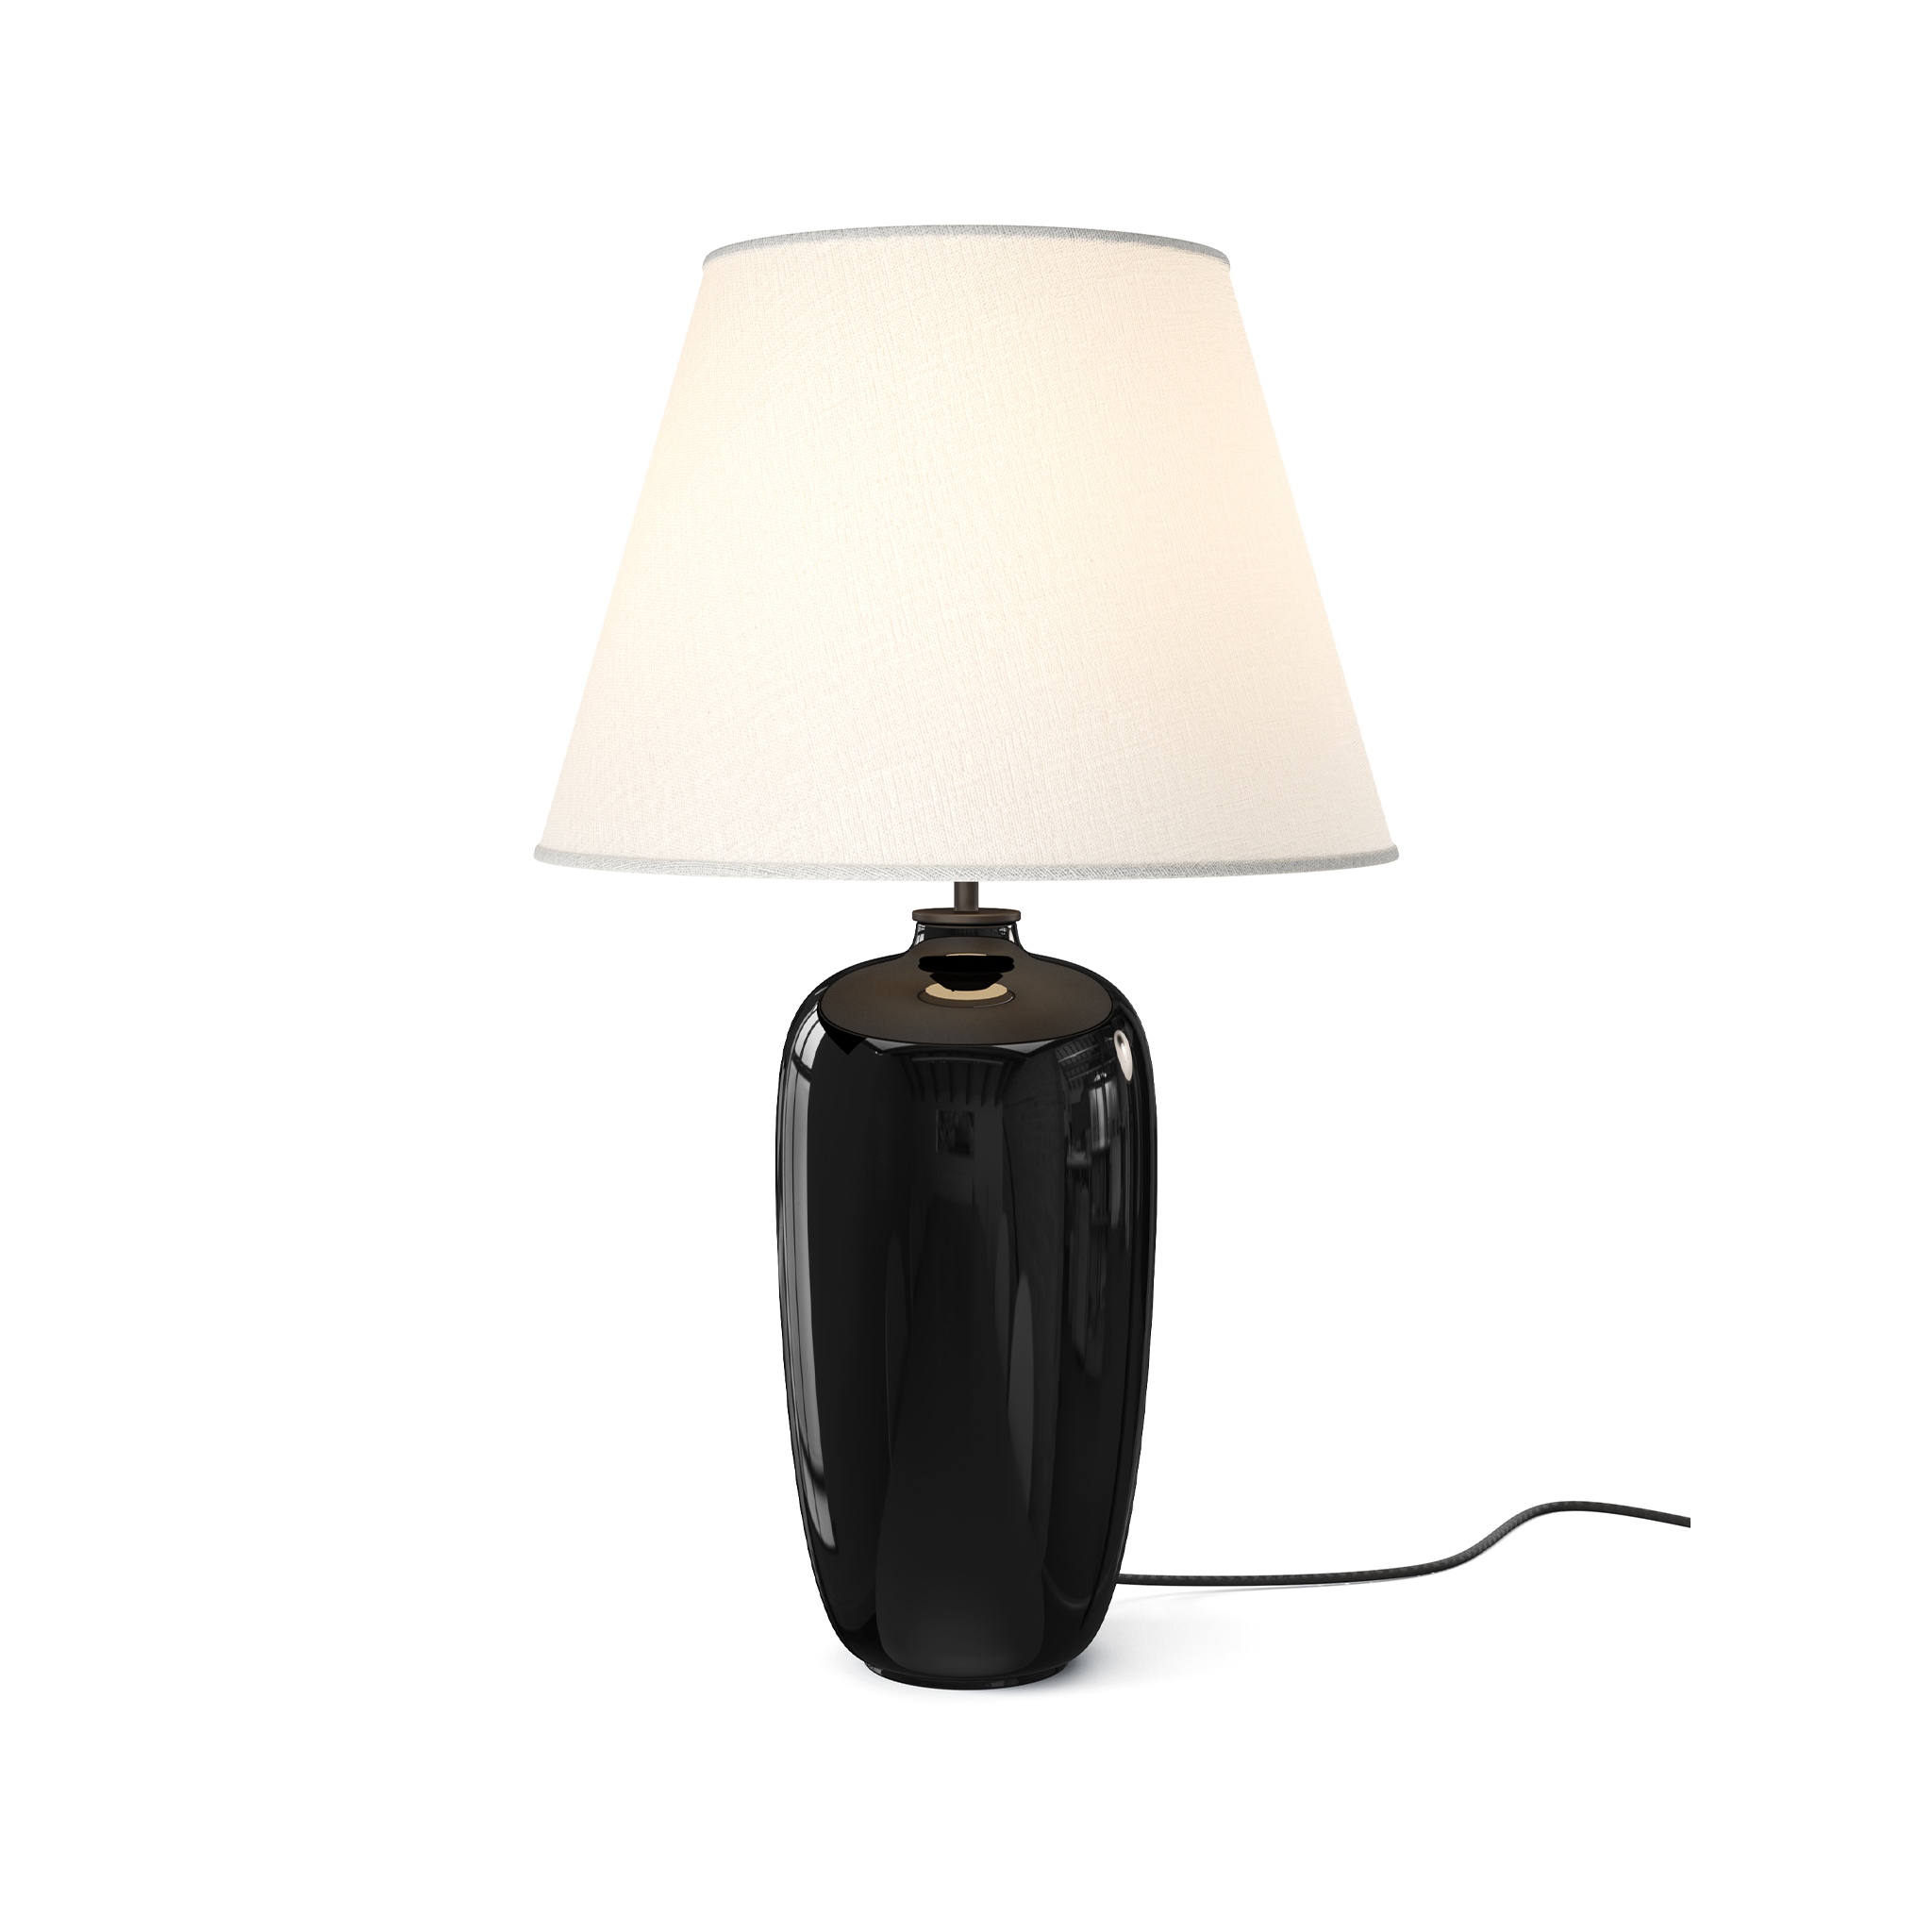 Torso Table Lamp, 57 by Krøyer-Sætter-Lassen for Menu